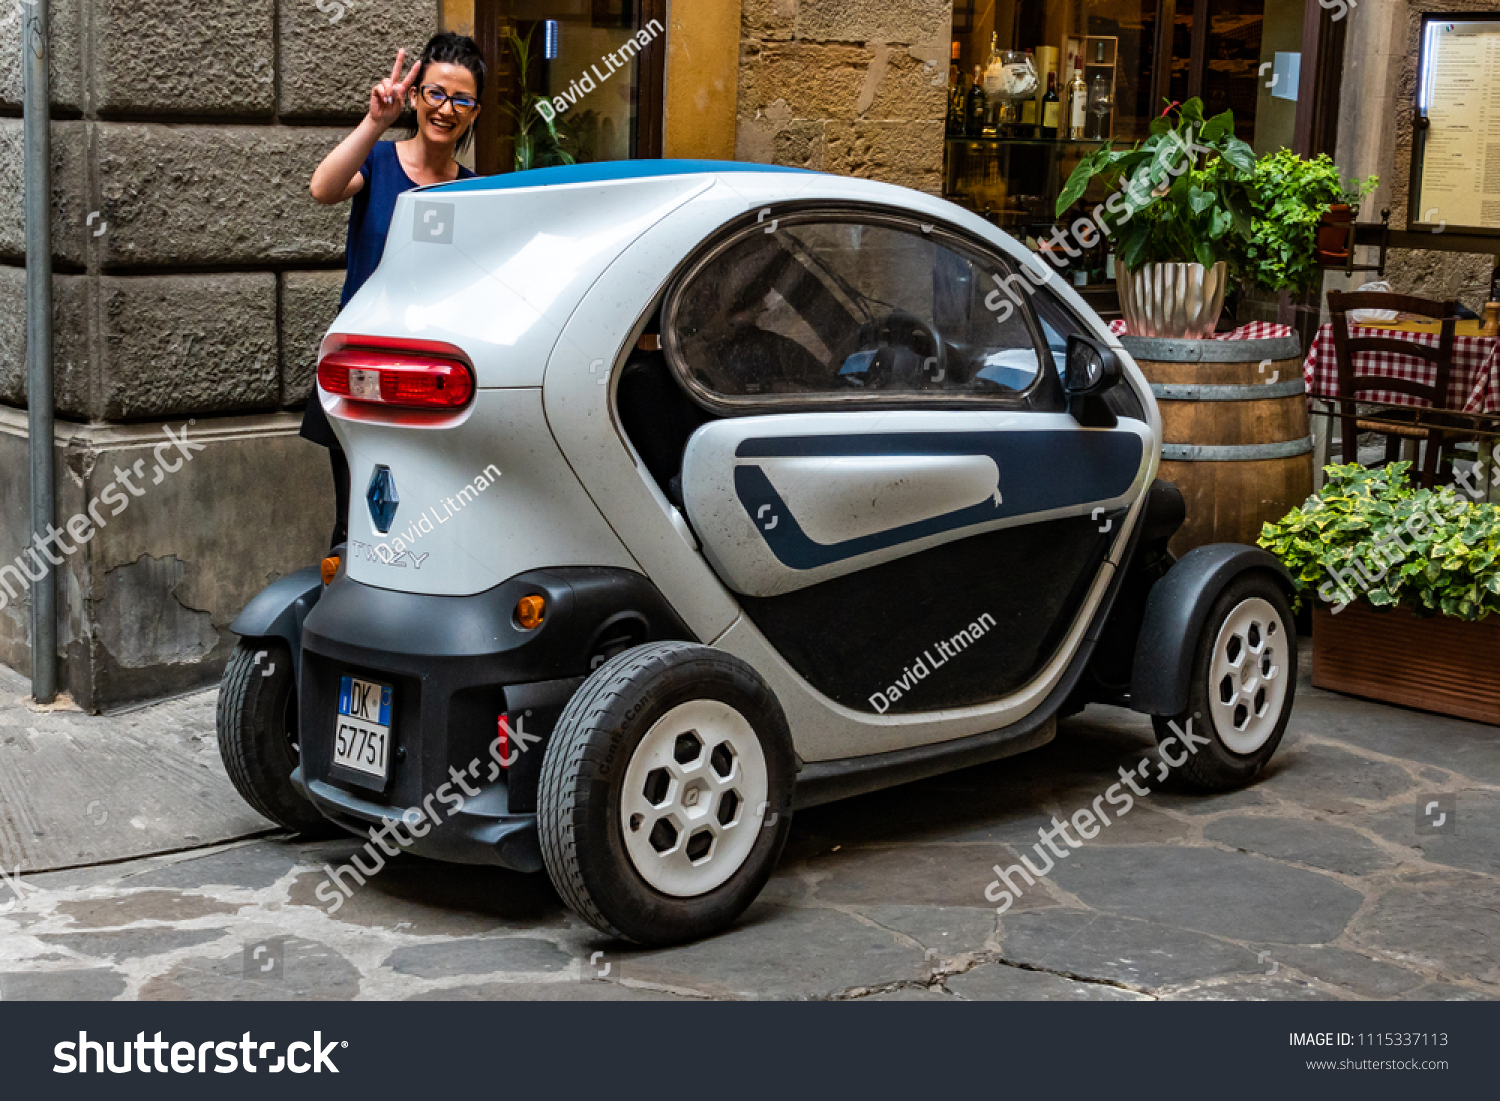 Florence, Italy - June 8, 2018: A woman shows off her Twizy, a small two-seat electric car designed and marketed by Renault and manufactured in Valladolid, Spain.